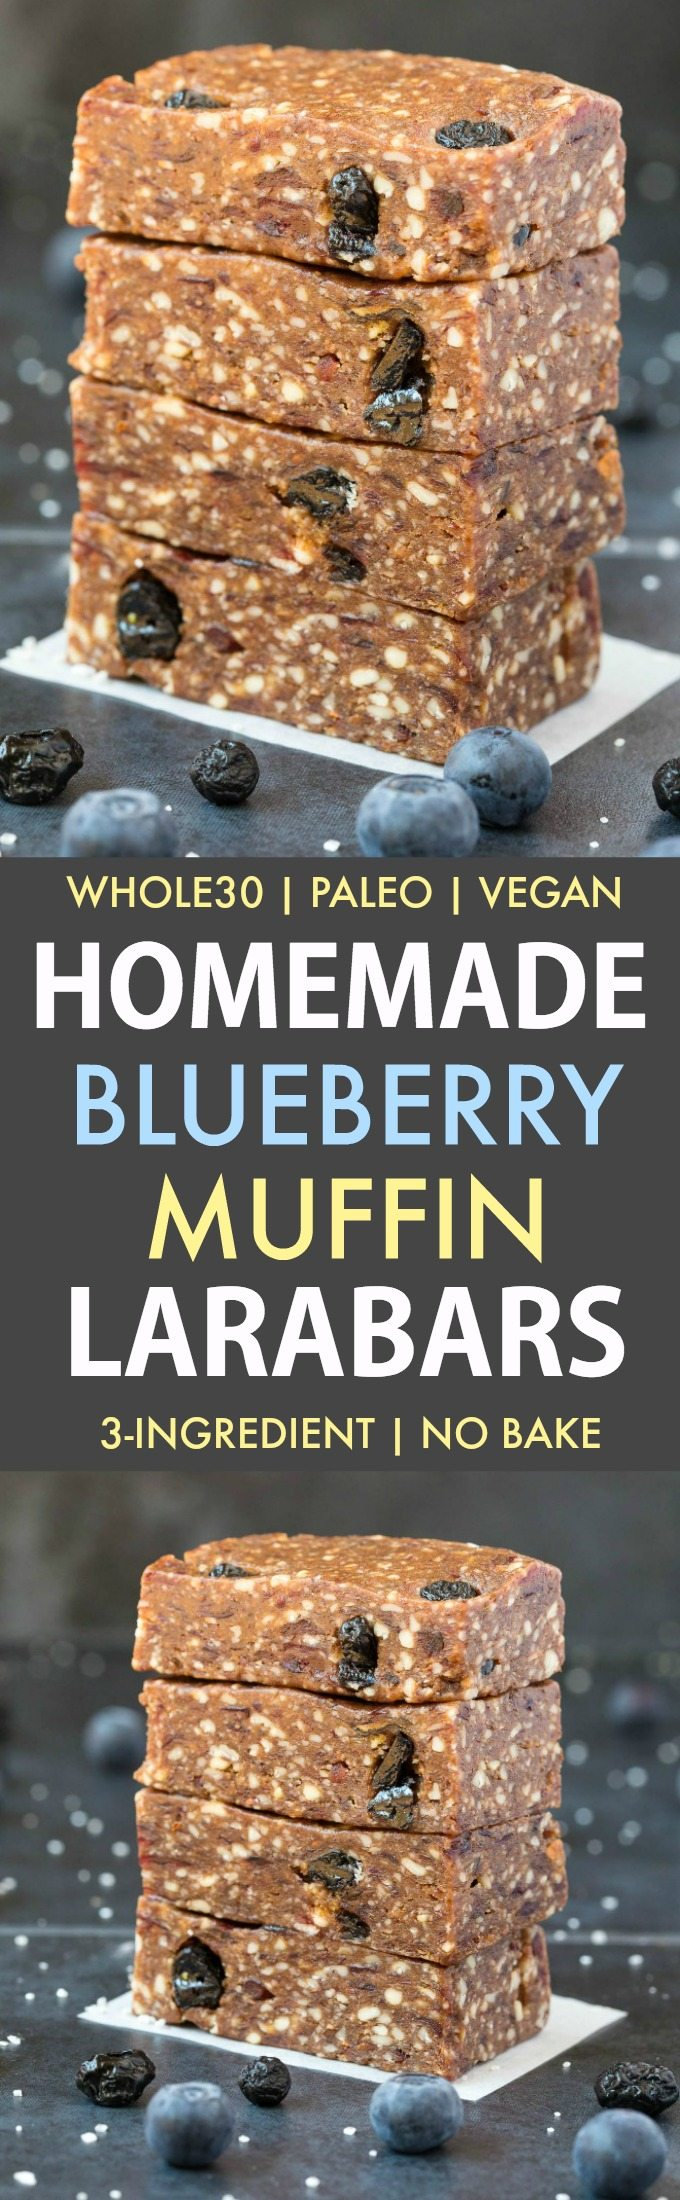 Homemade Blueberry Muffin Larabars (Whole30, Paleo, Vegan, Gluten Free) These homemade Larabars are cheaper than store-bought and take minutes to whip up! Made with just 3 Ingredients and whole30 approved! (vegan, whole 30, dairy free, refined sugar free)- #whole30 #vegan #whole30approved | Recipe on thebigmansworld.com